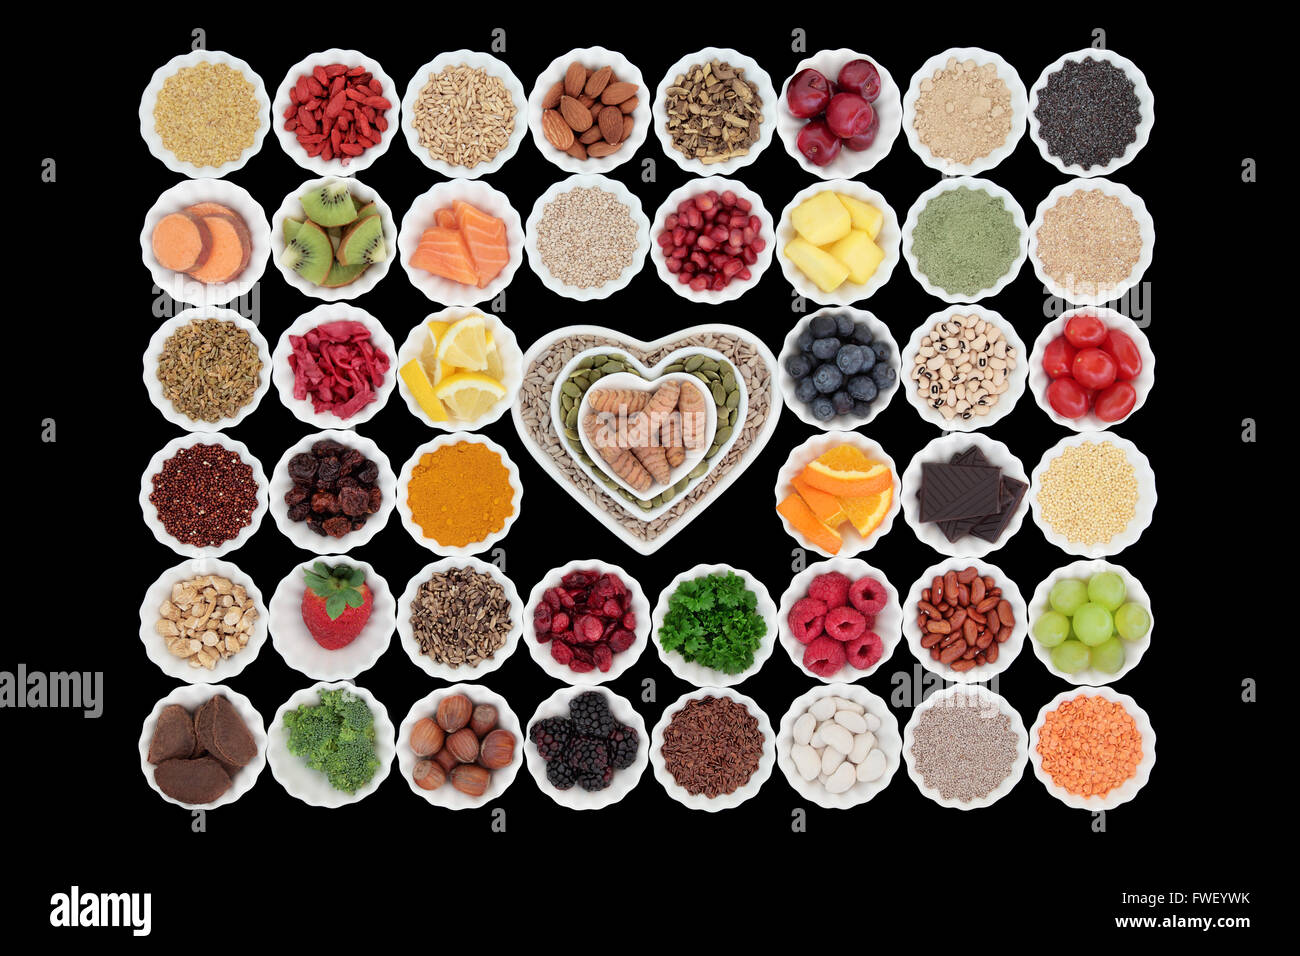 Large healthy super food collection in porcelain crinkle bowls over black background. High in vitamins and antioxidants. - Stock Image